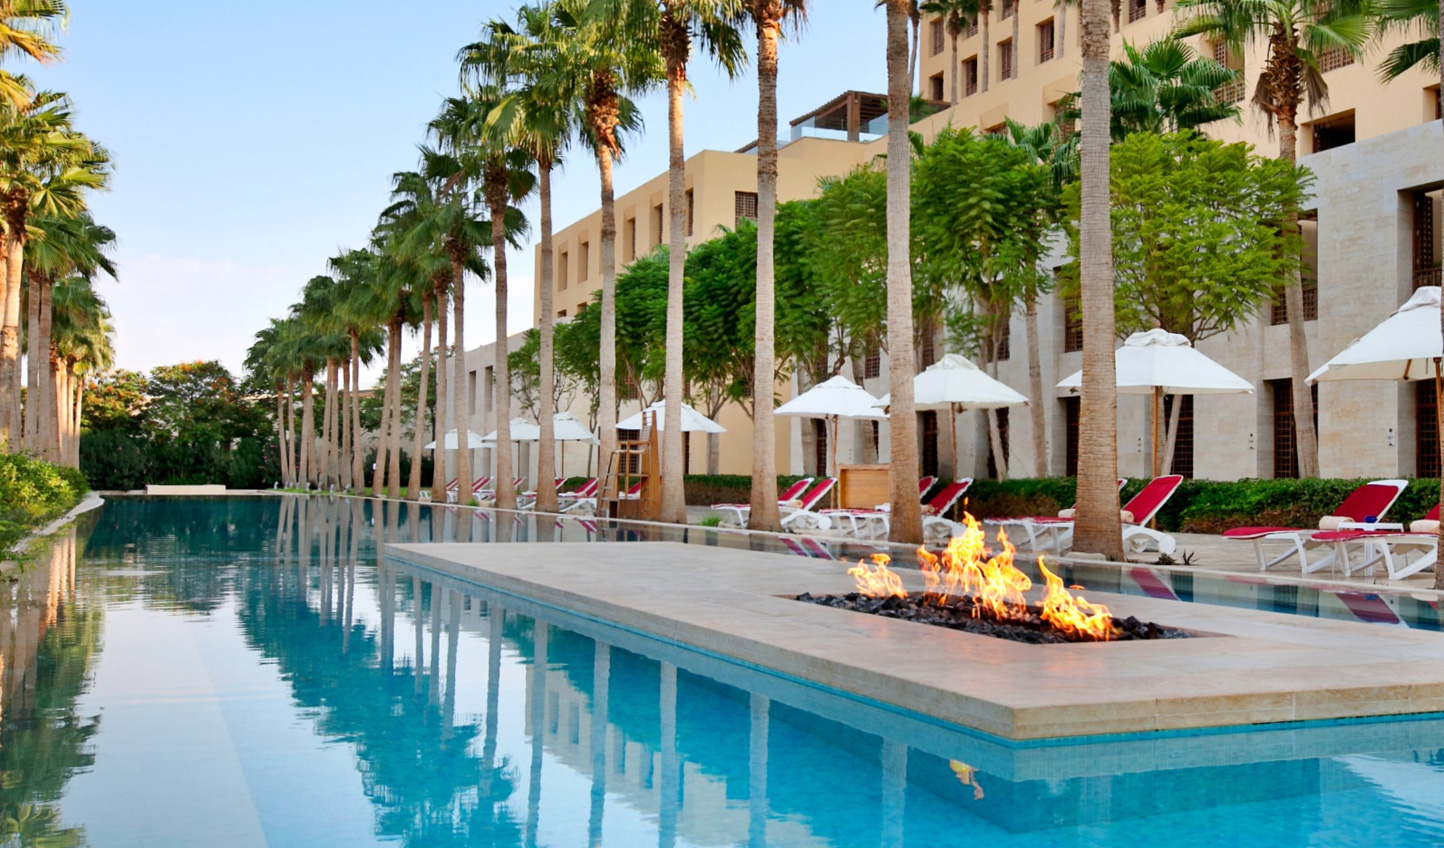 Relax by the palm-fringed pool at Kempinski Hotel Ishtar